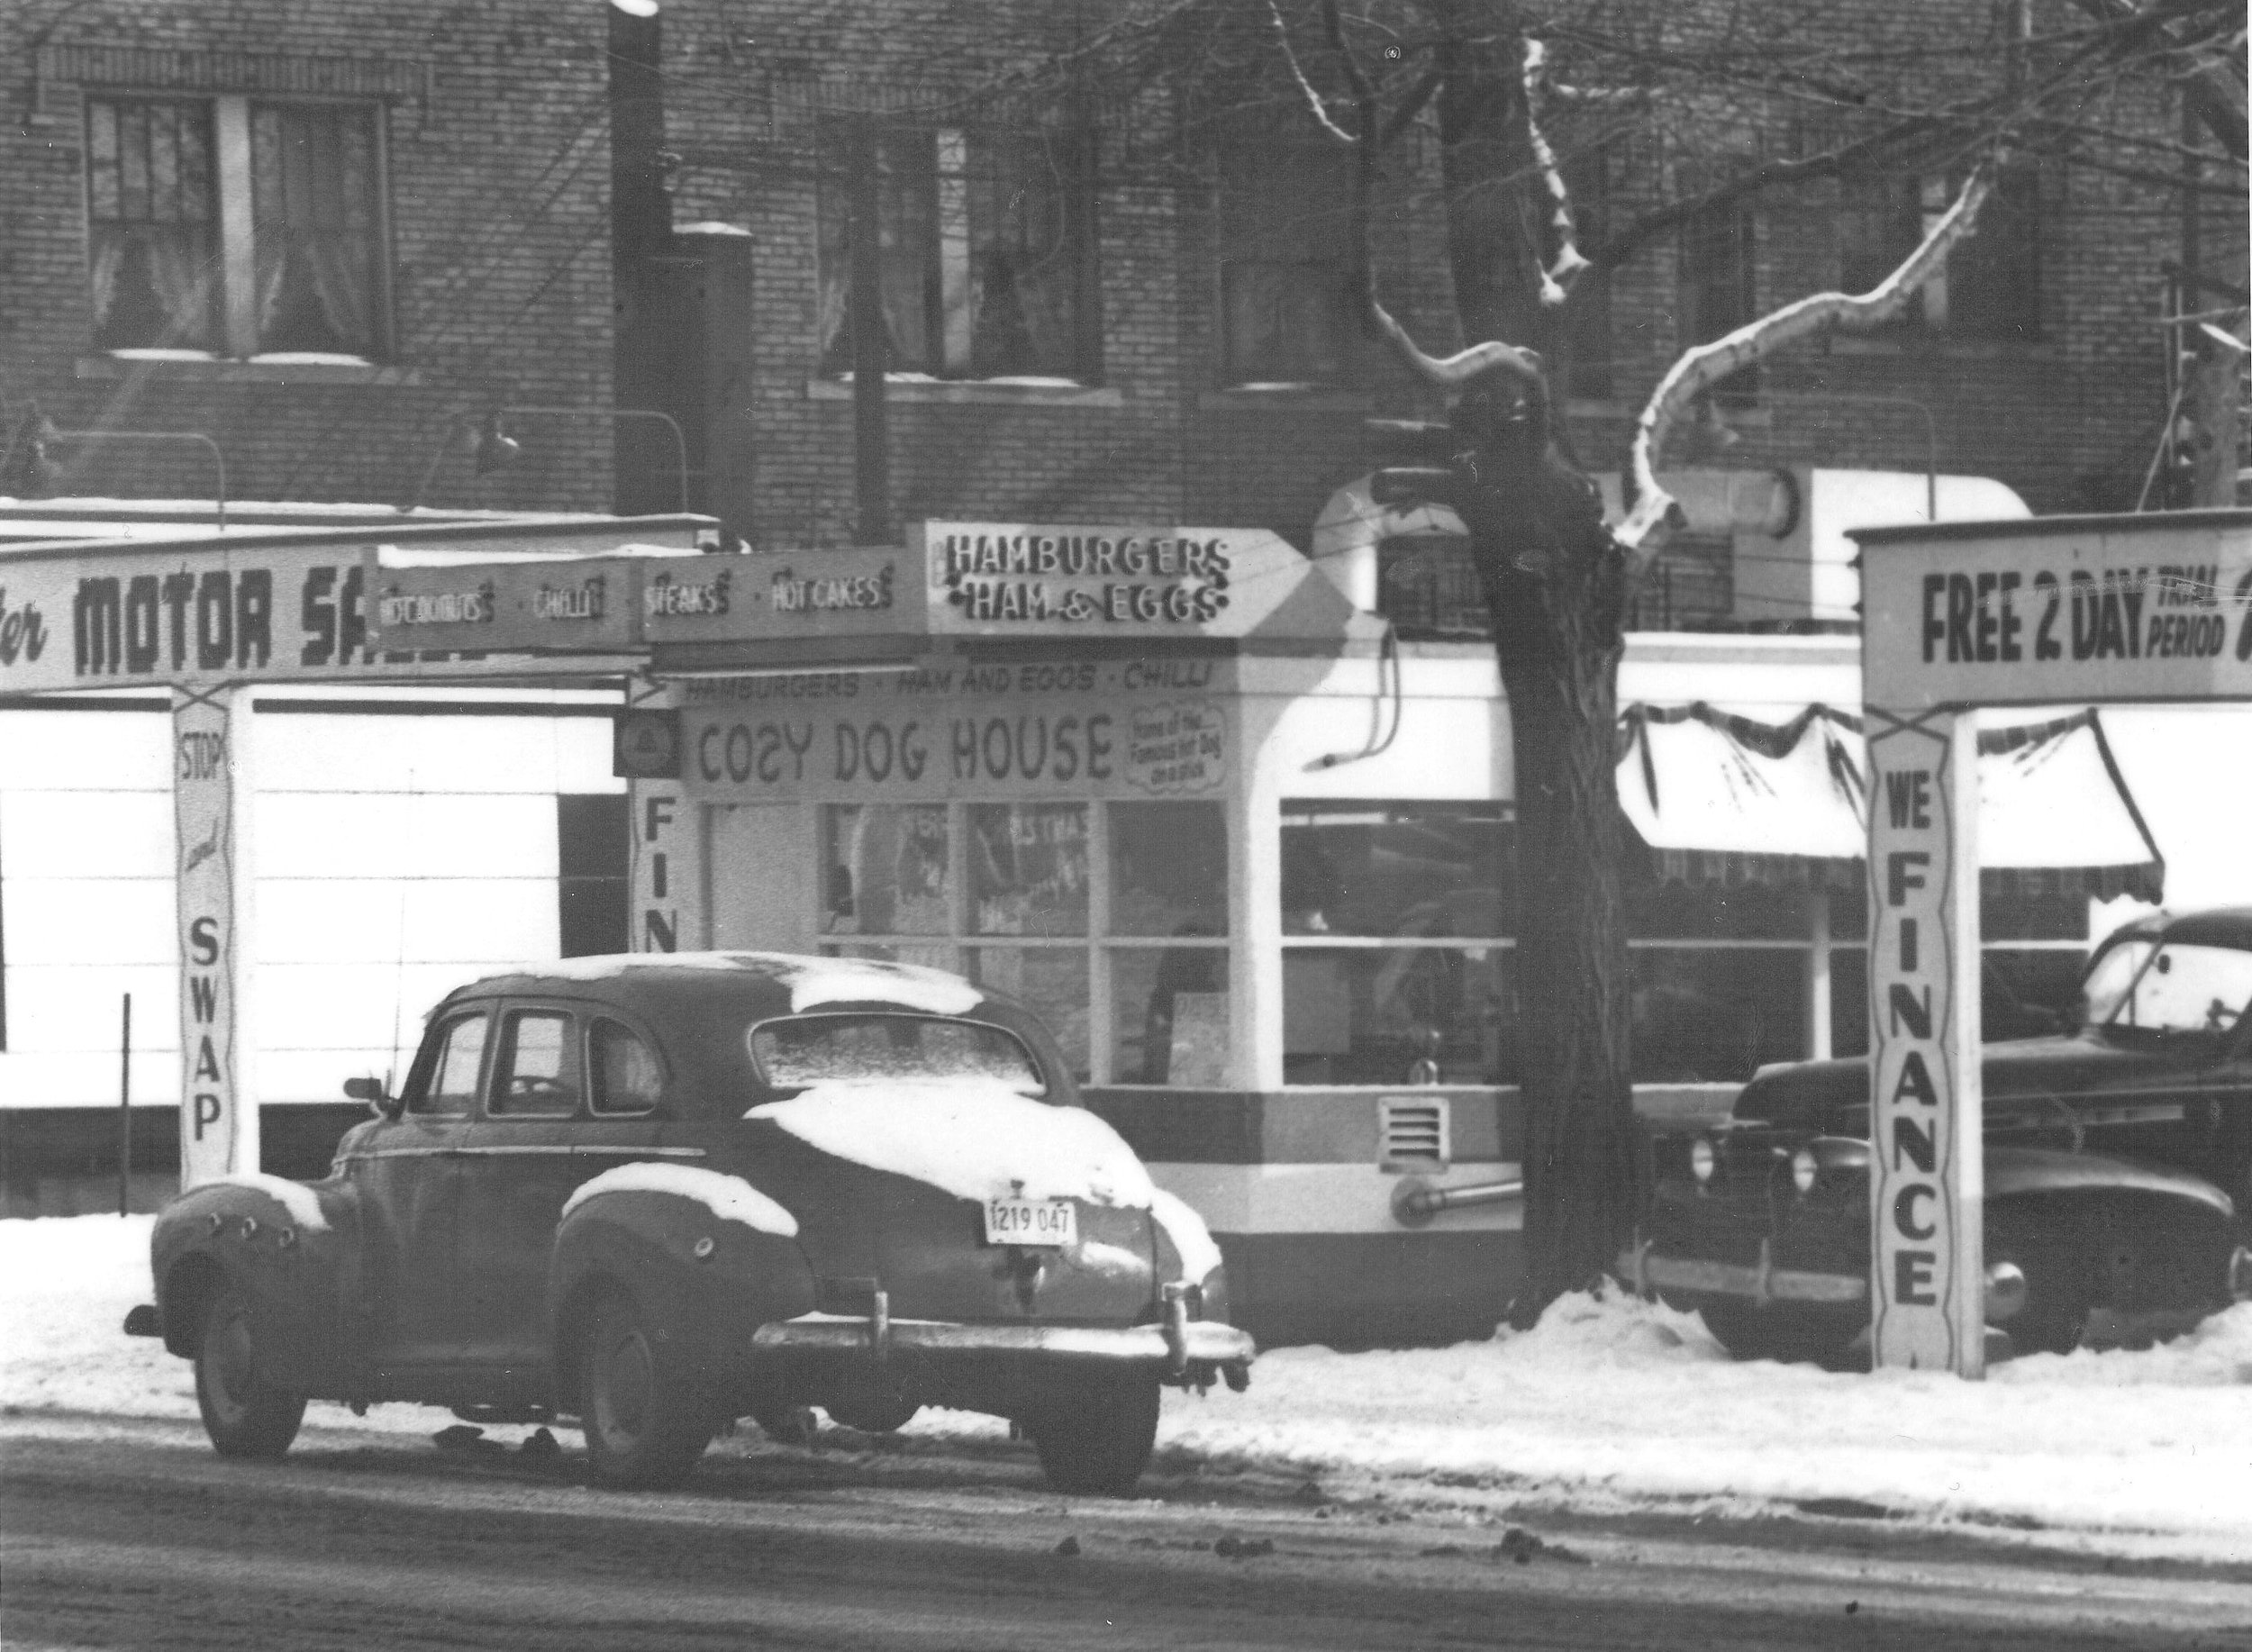 Cozy Dog Drive In First location 1946. South Grand & Sixth Street.